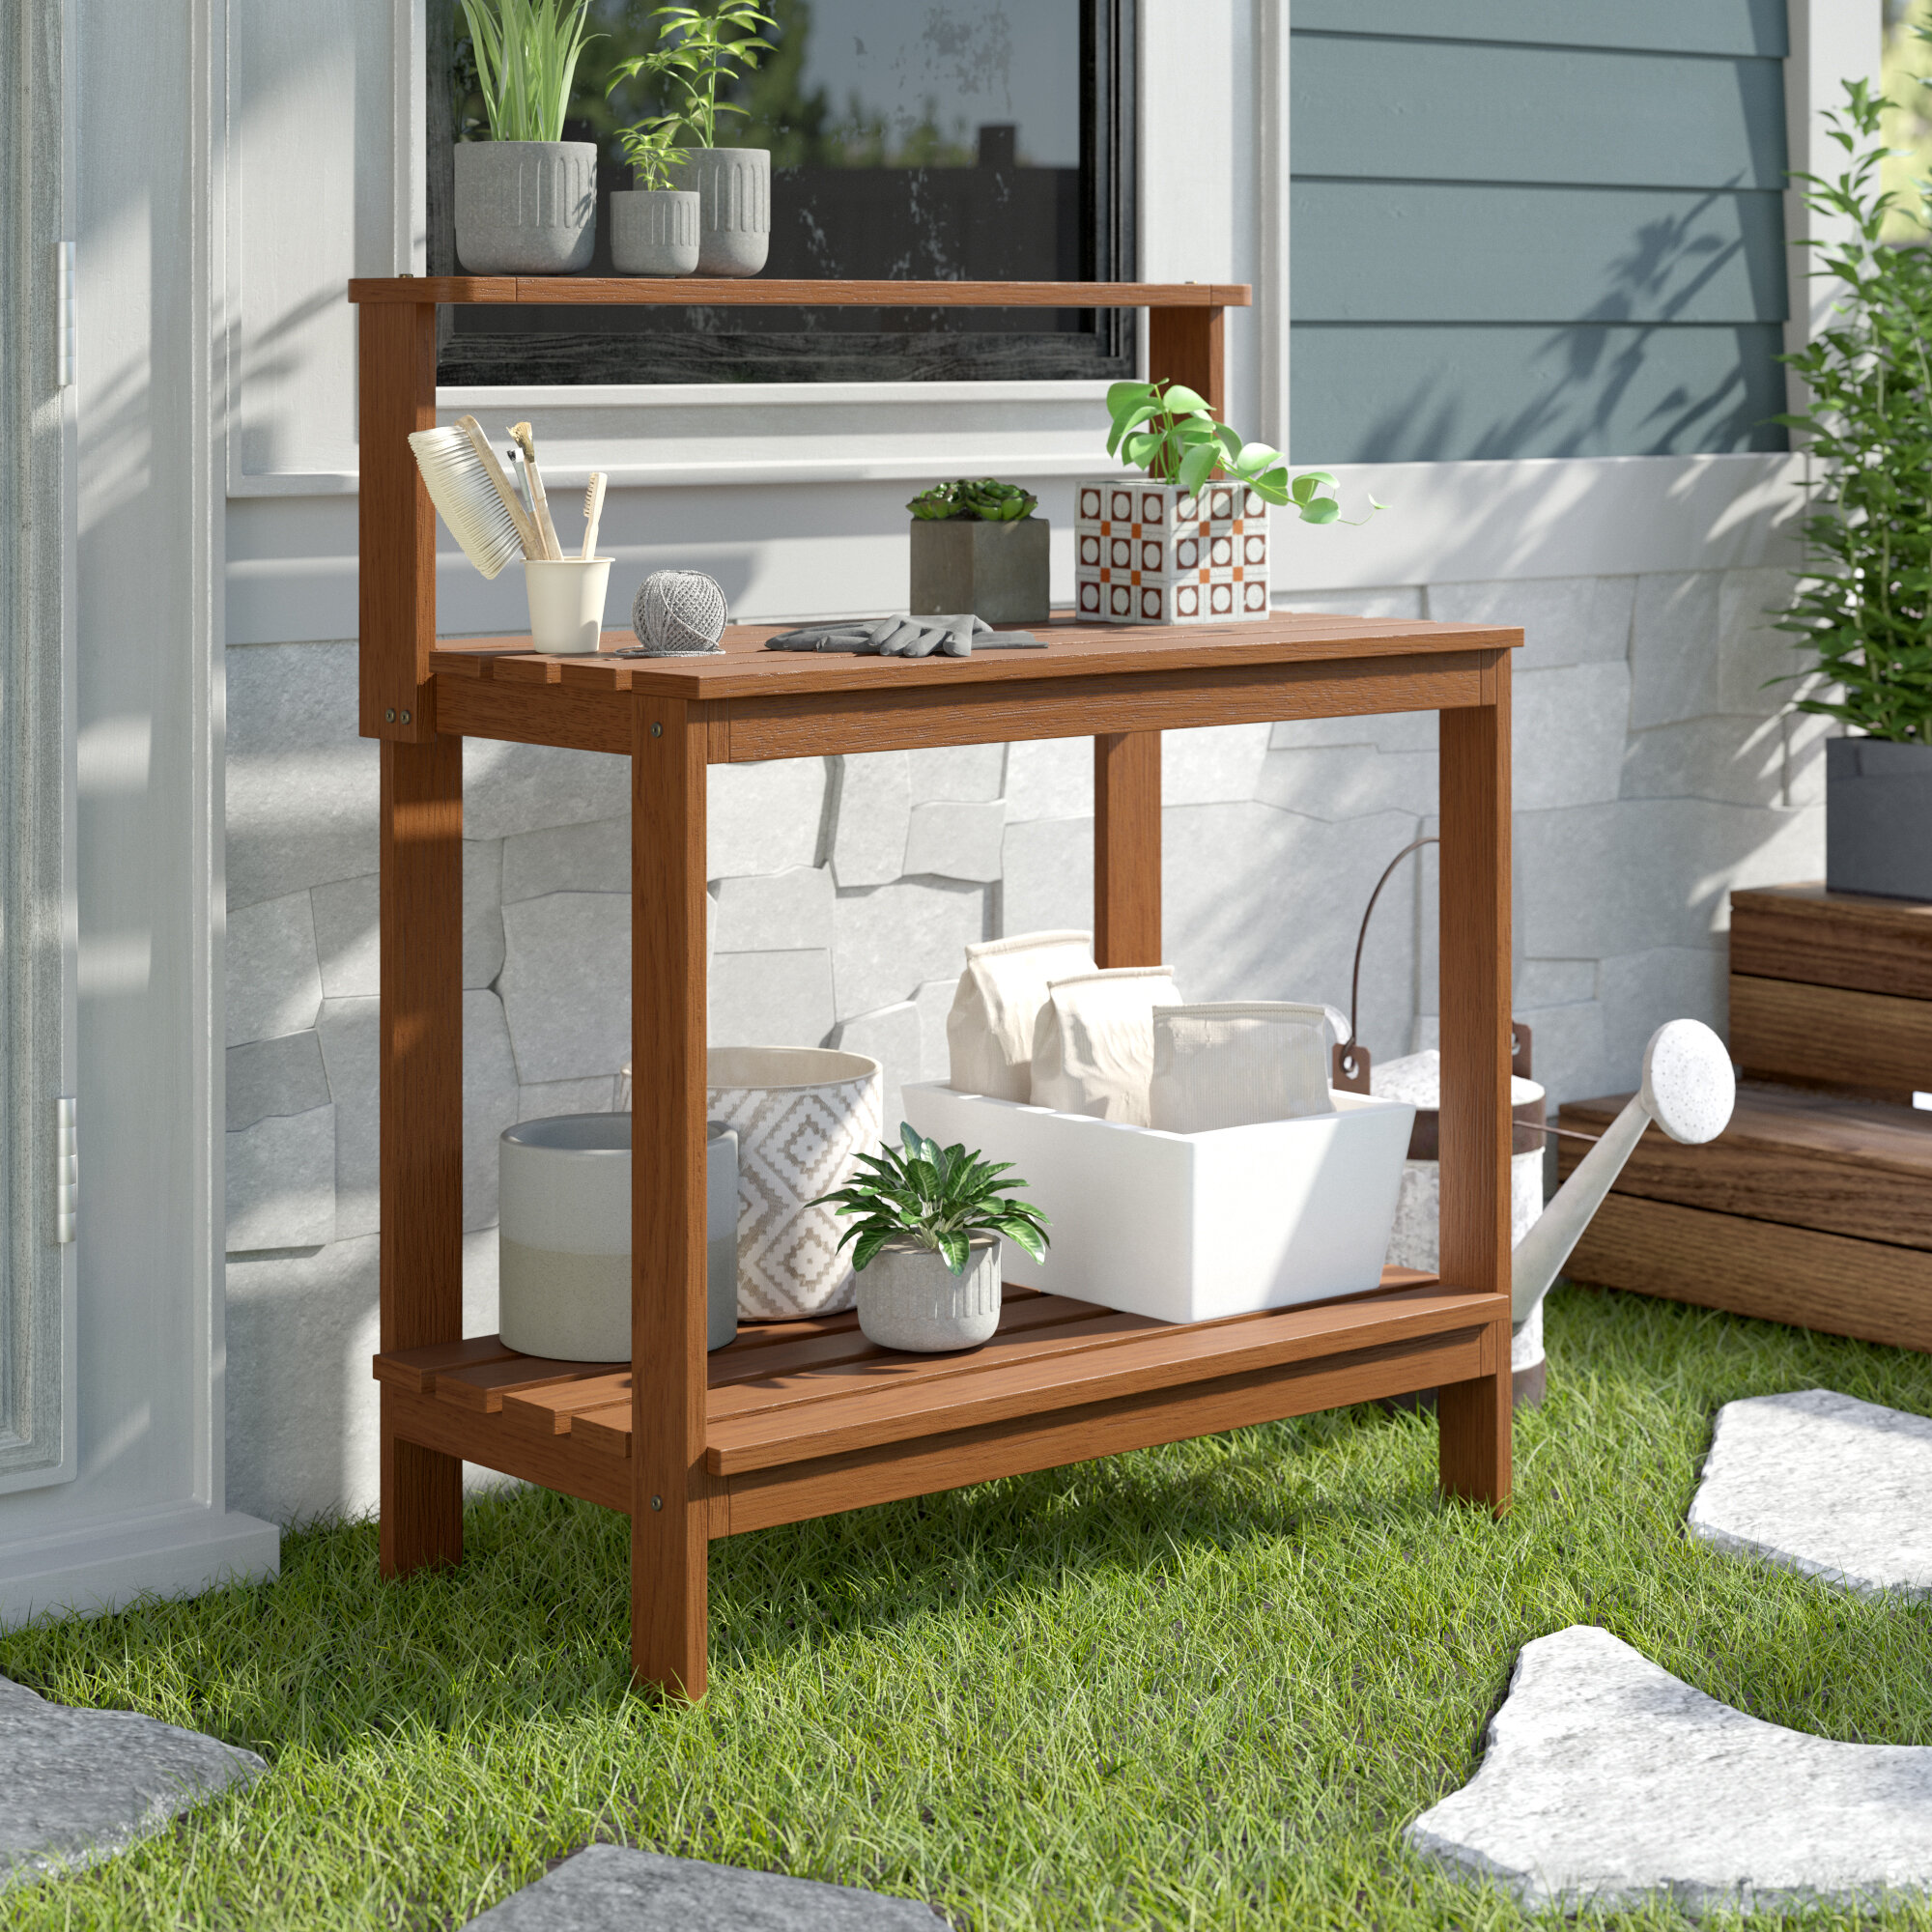 Sol 72 Outdoor Aanya Hardwood Dark Red Meranti Potting Bench Reviews Wayfair